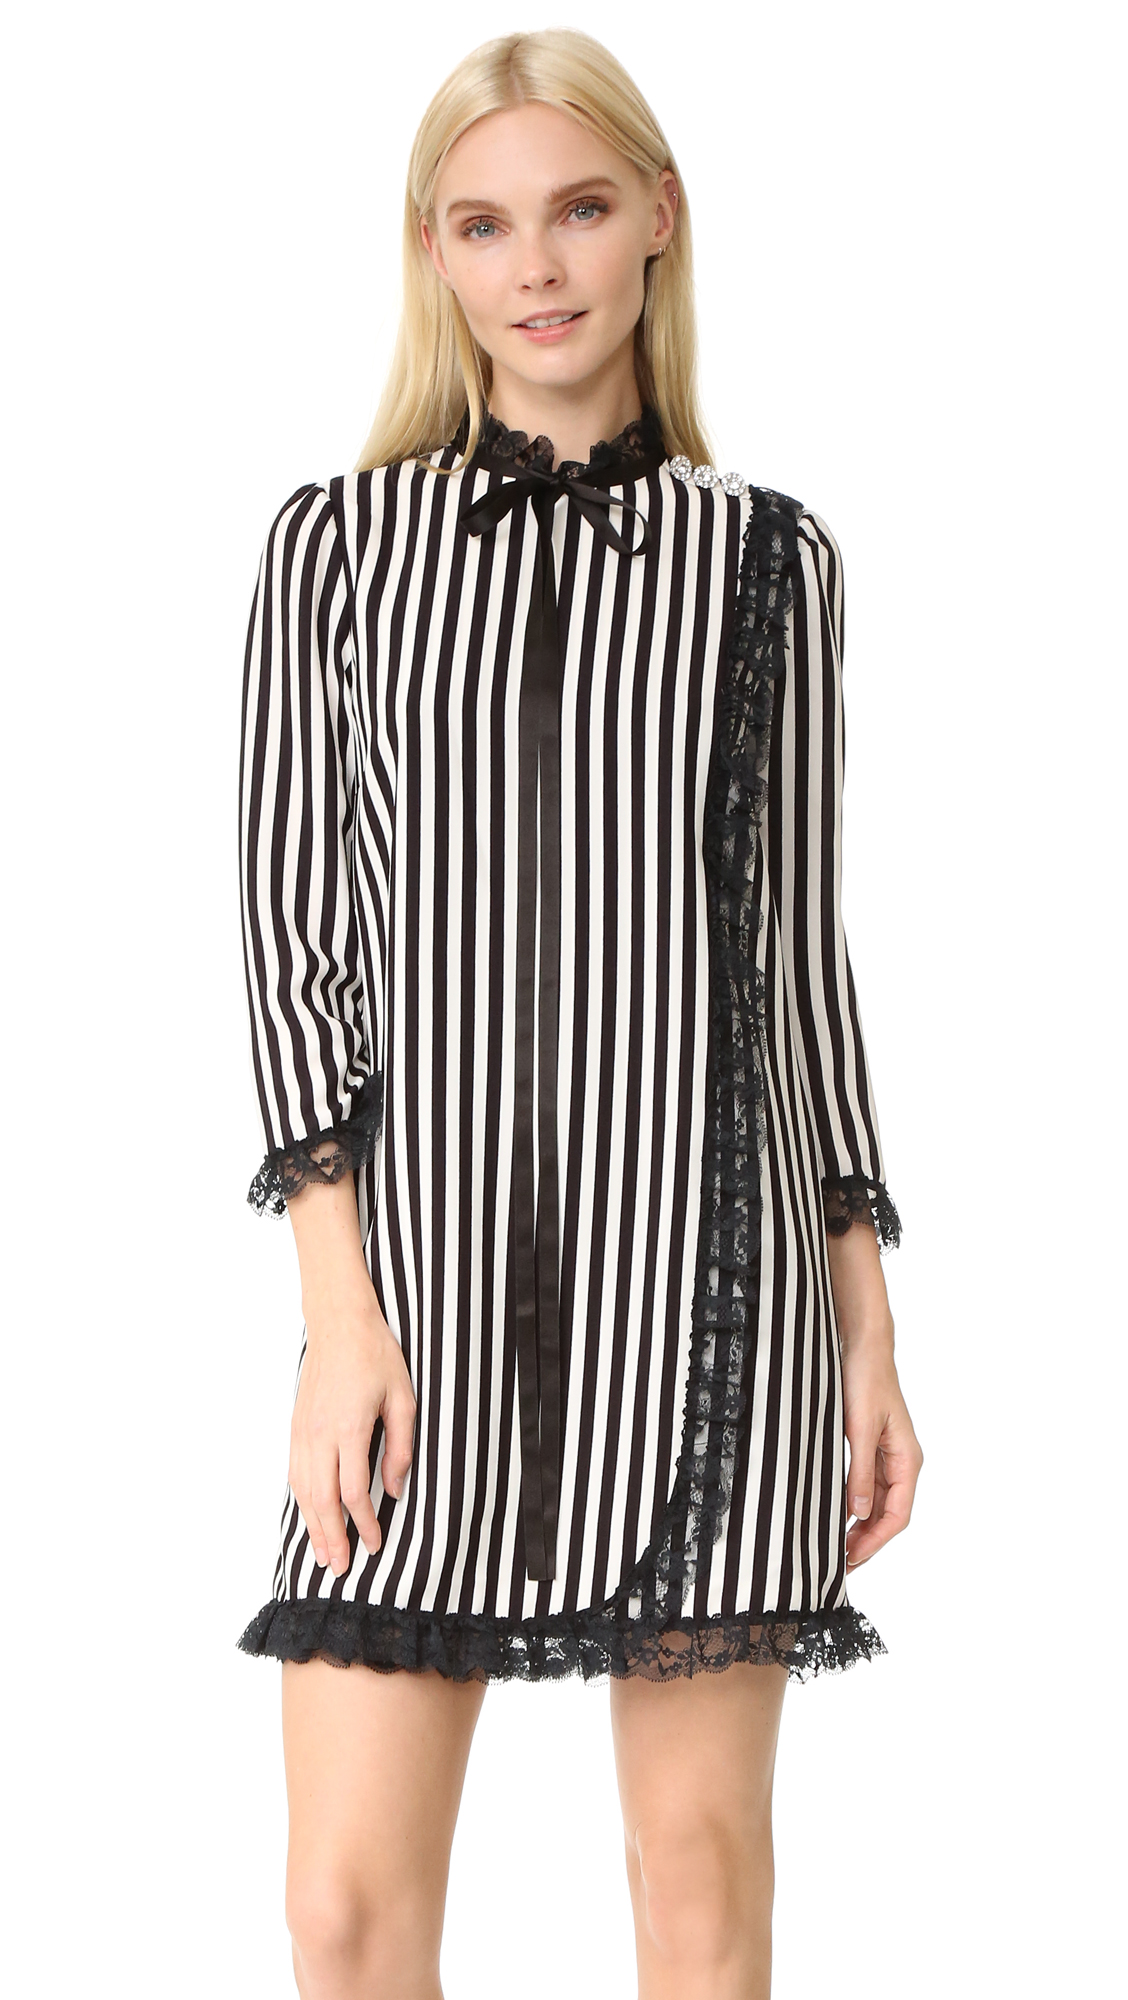 marc jacobs female marc jacobs striped babydoll dress blackparchment